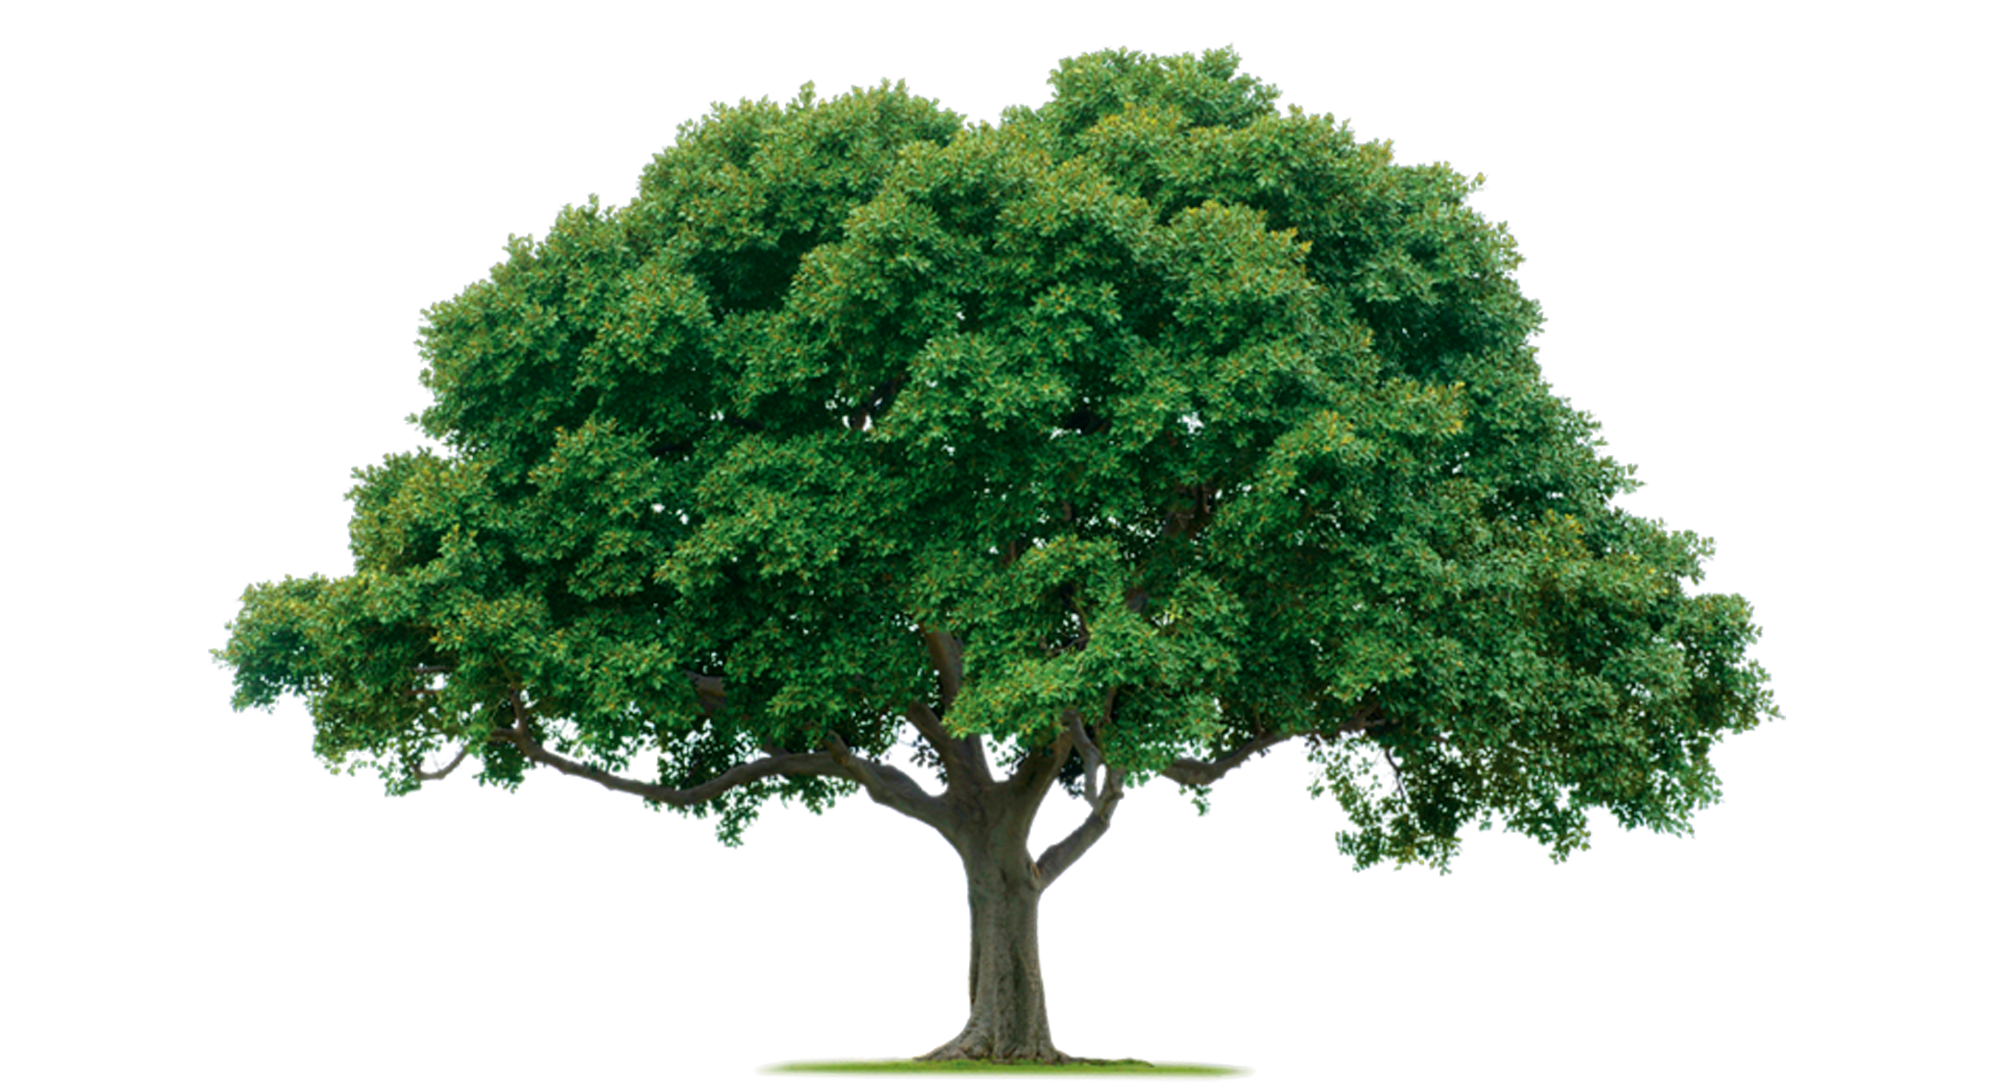 House tree clipart clip art library download Home Tree | Free Images at Clker.com - vector clip art online ... clip art library download